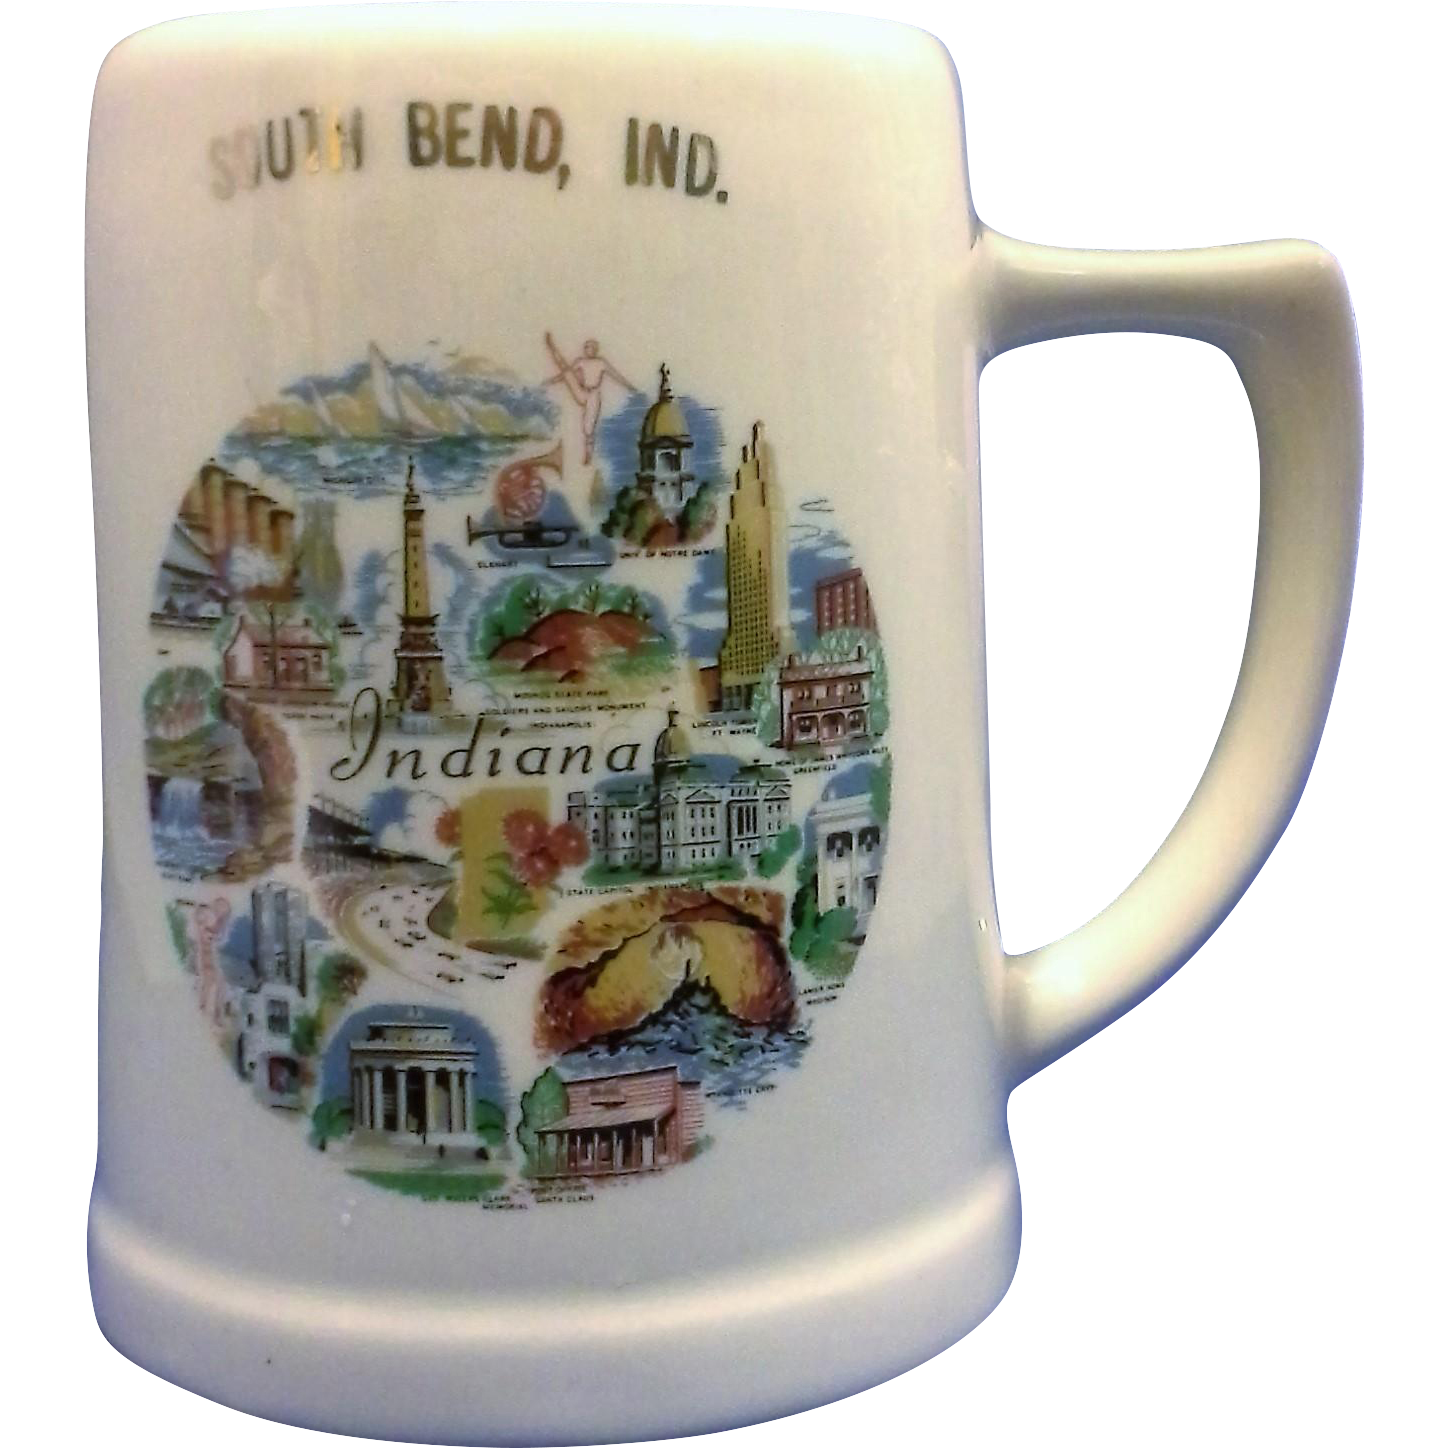 South Bend, Indiana Souvenir Stein Mug Pottery